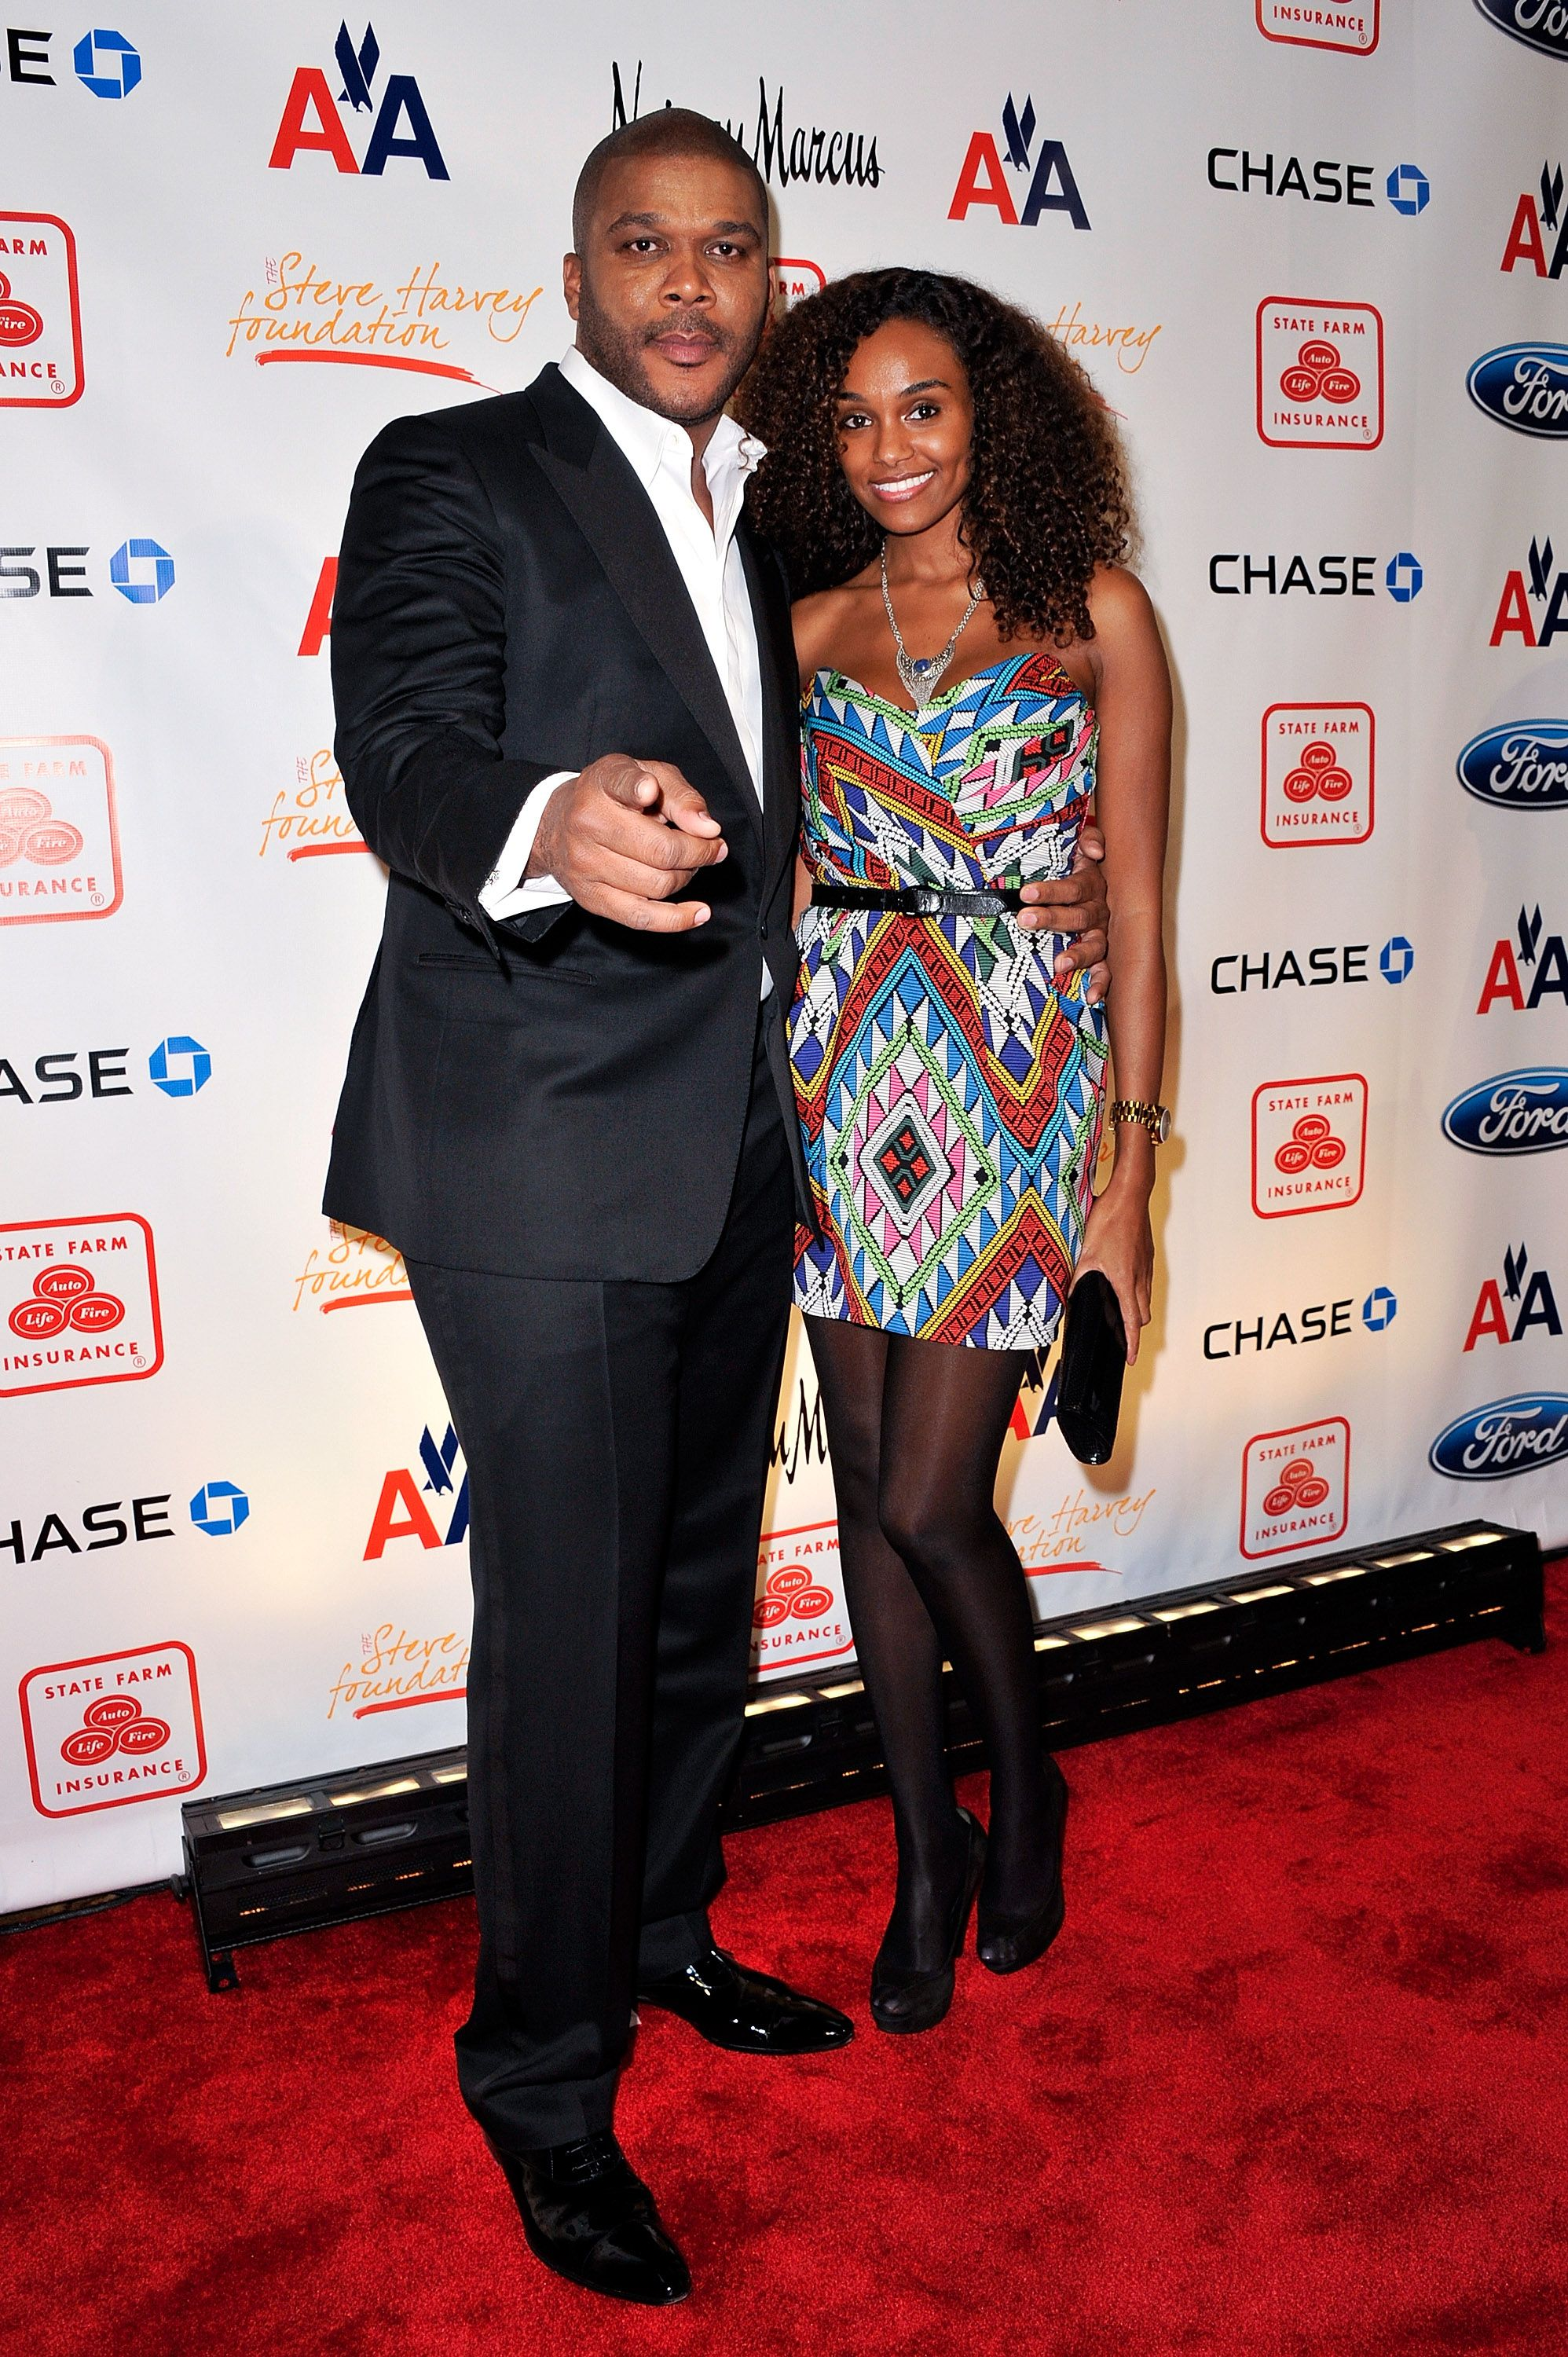 Tyler Perry and model Gelila Bekele attend the 2nd annual Steve Harvey Foundation gala at Cipriani Wall Street on April 4, 2011 in New York City. | Source: Getty Images